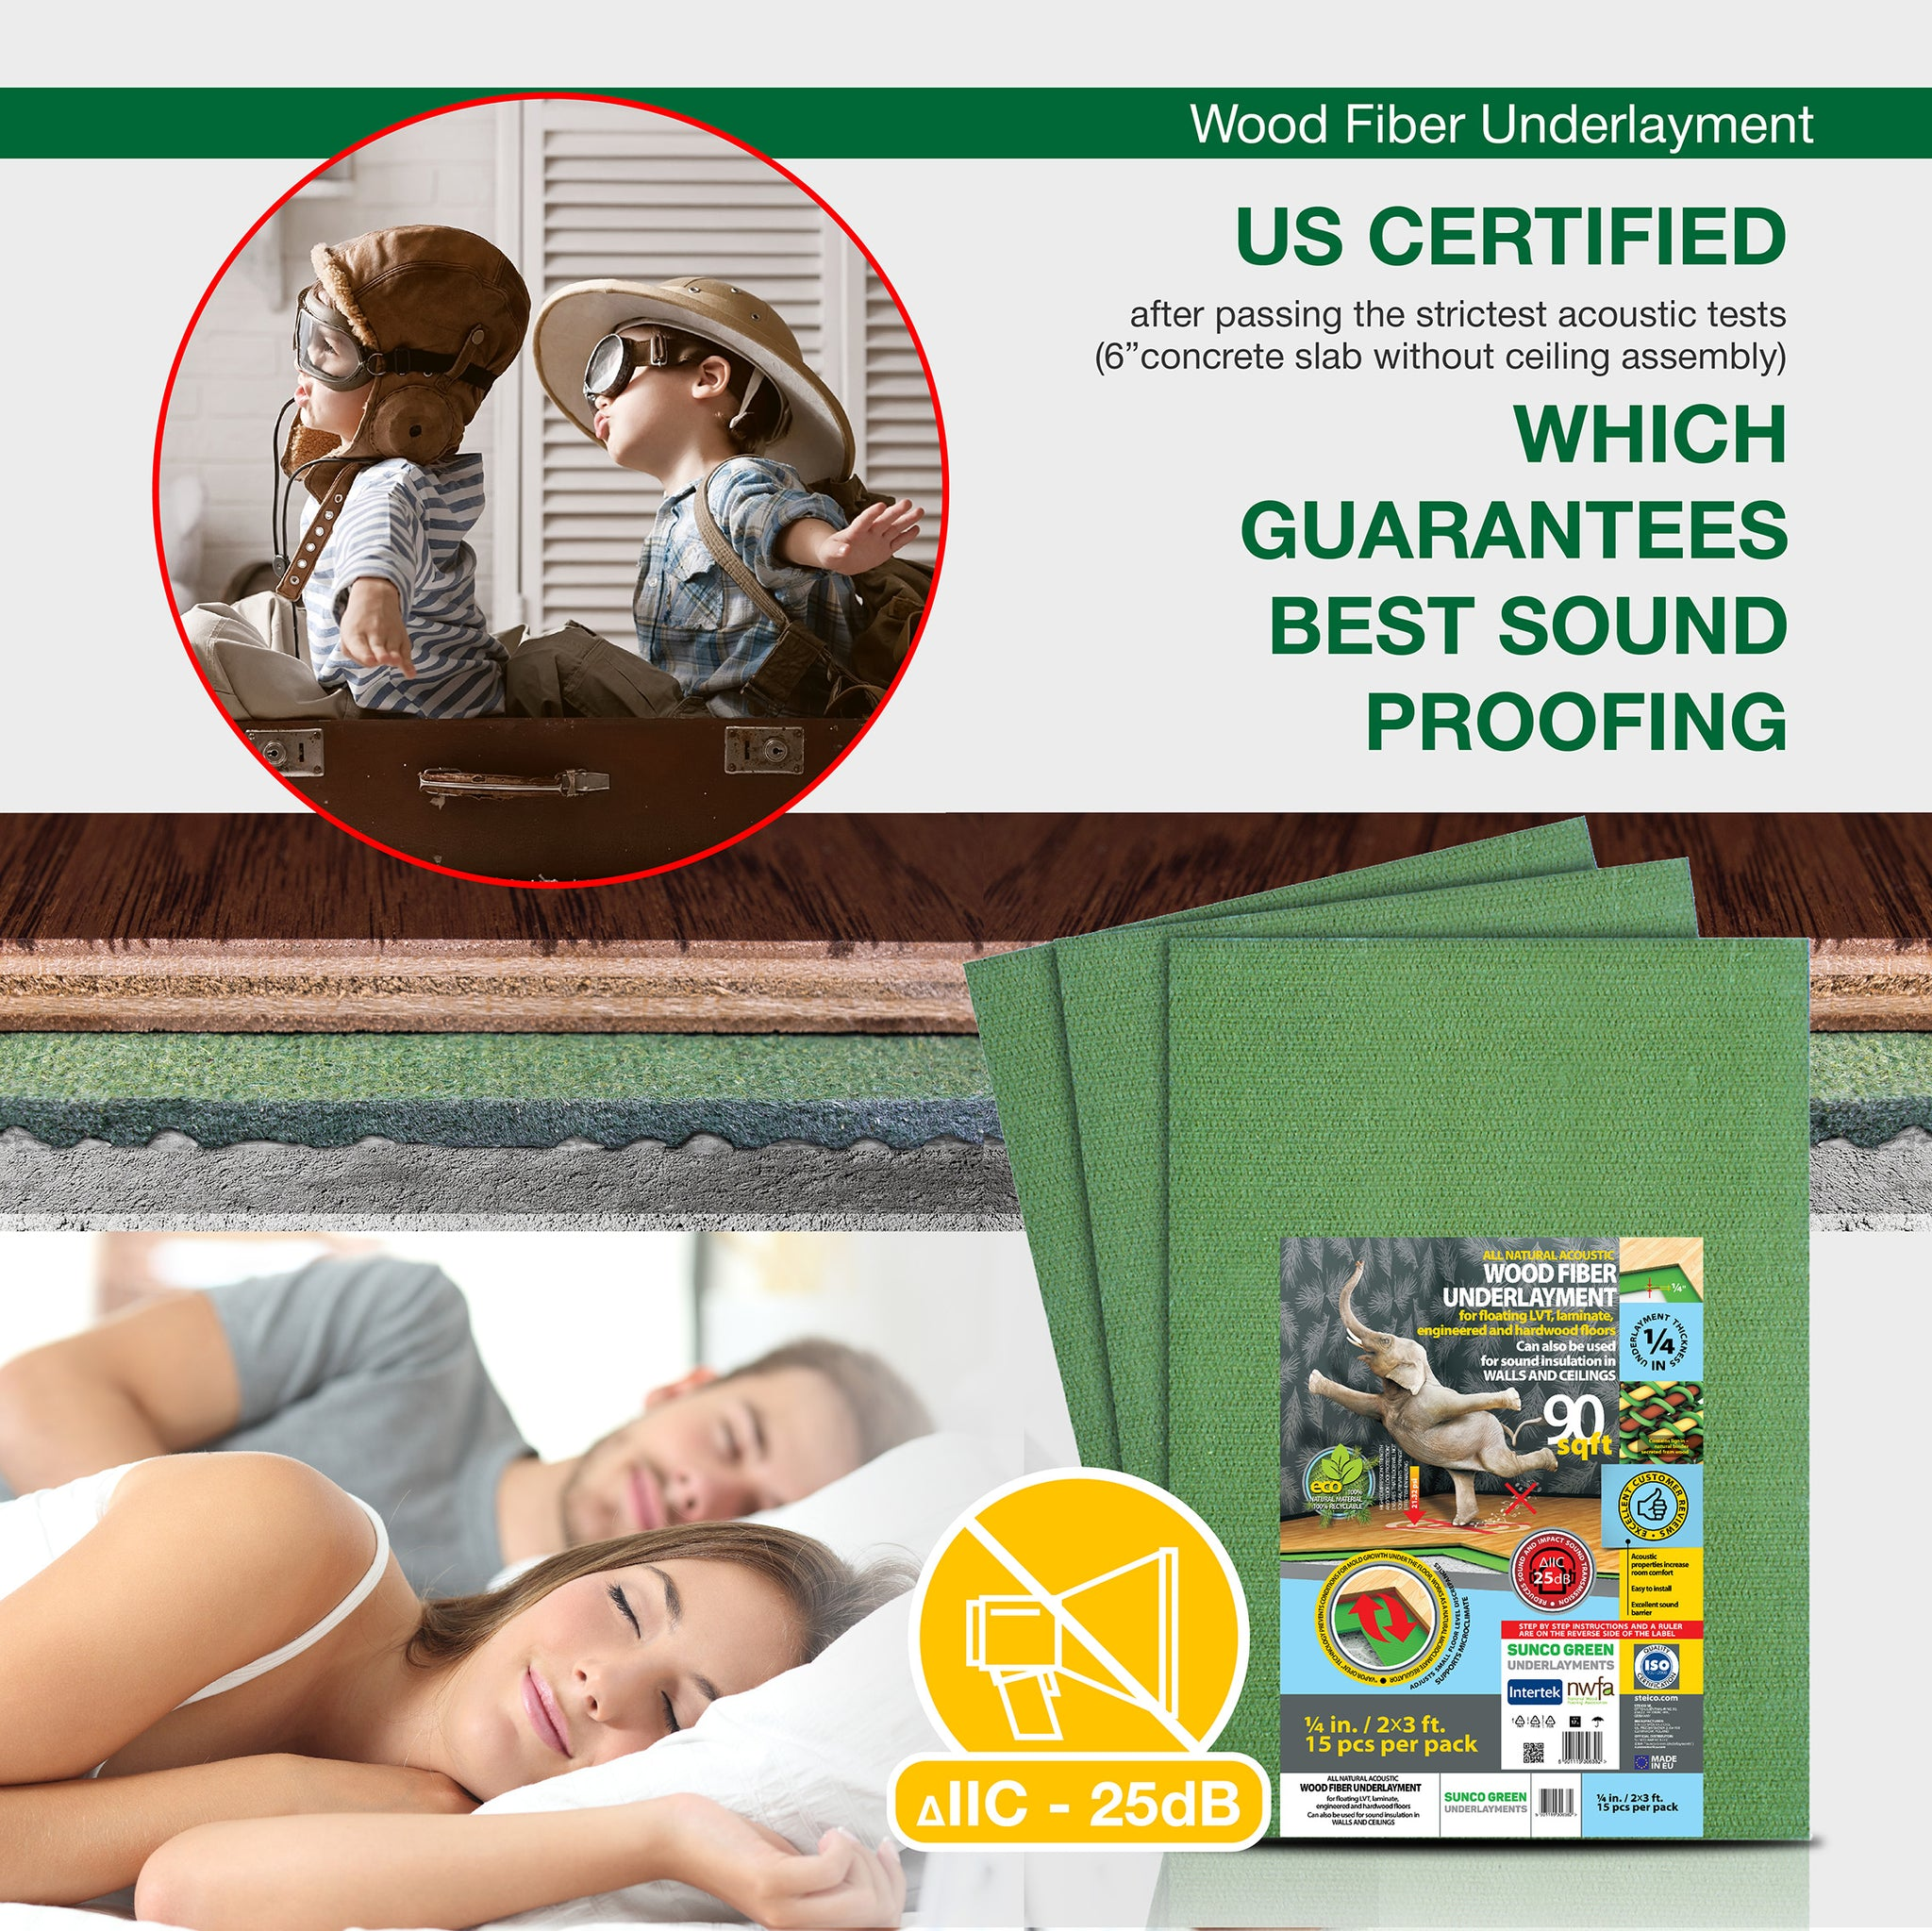 Best Sound Proofing Underlayment